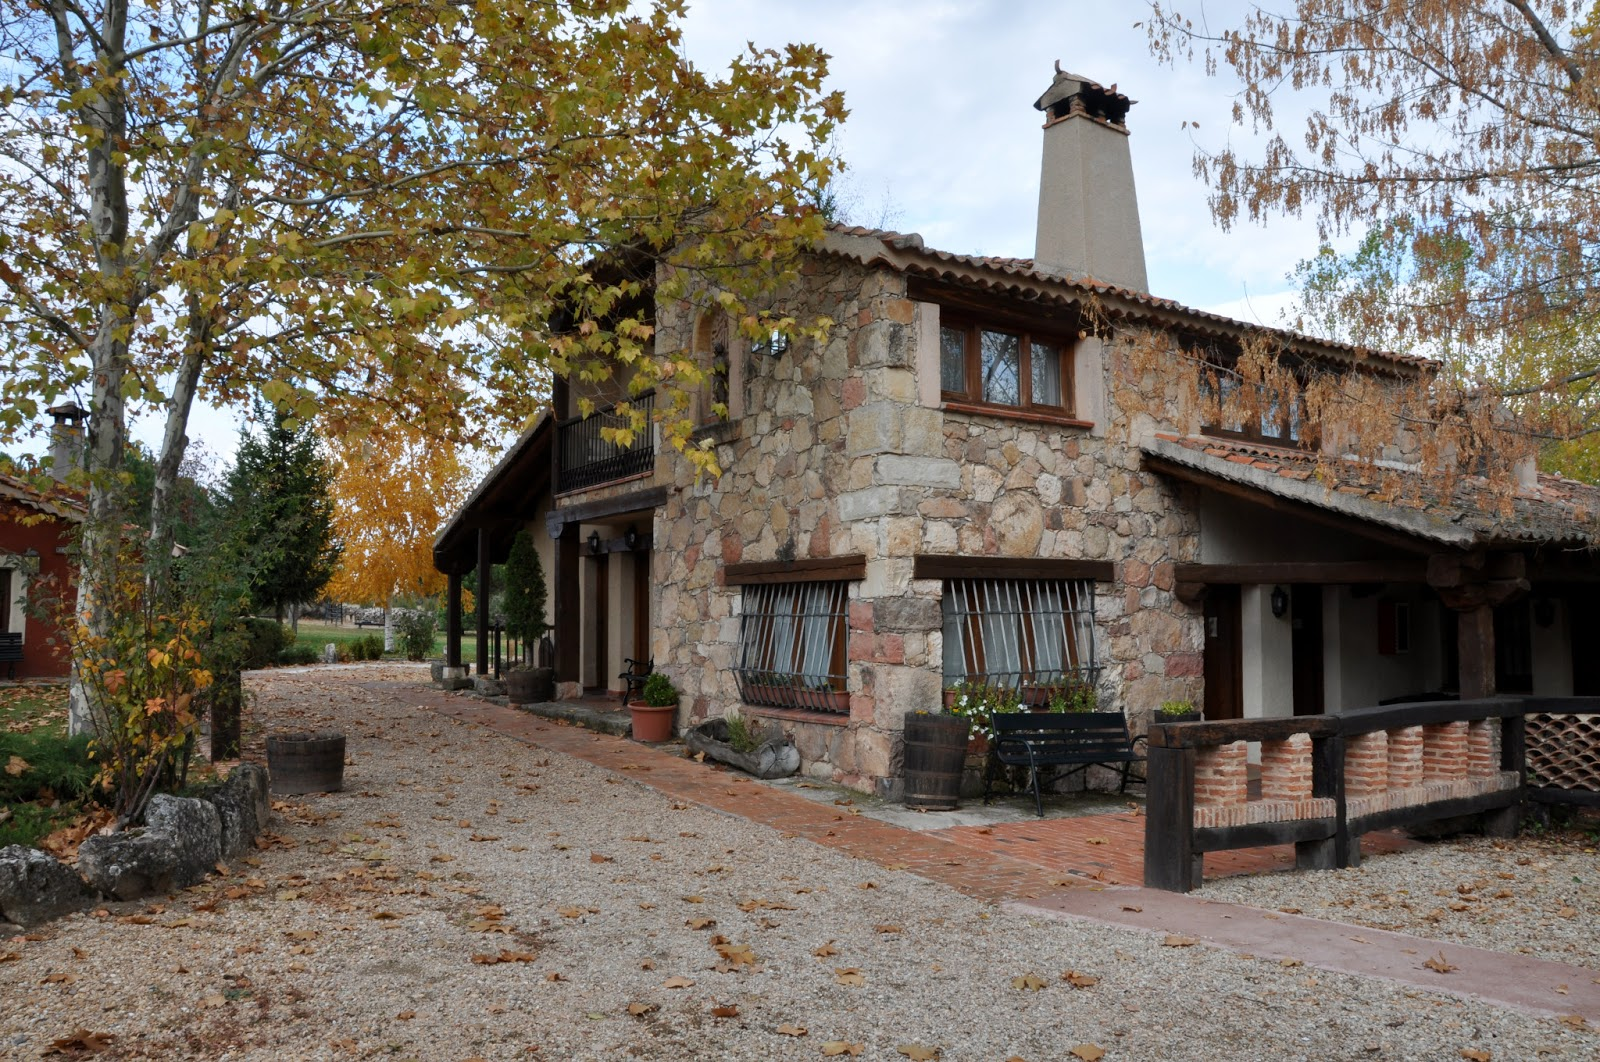 Estancias rurales charming hotels habitaci nes con for Hoteles con chimenea en la habitacion